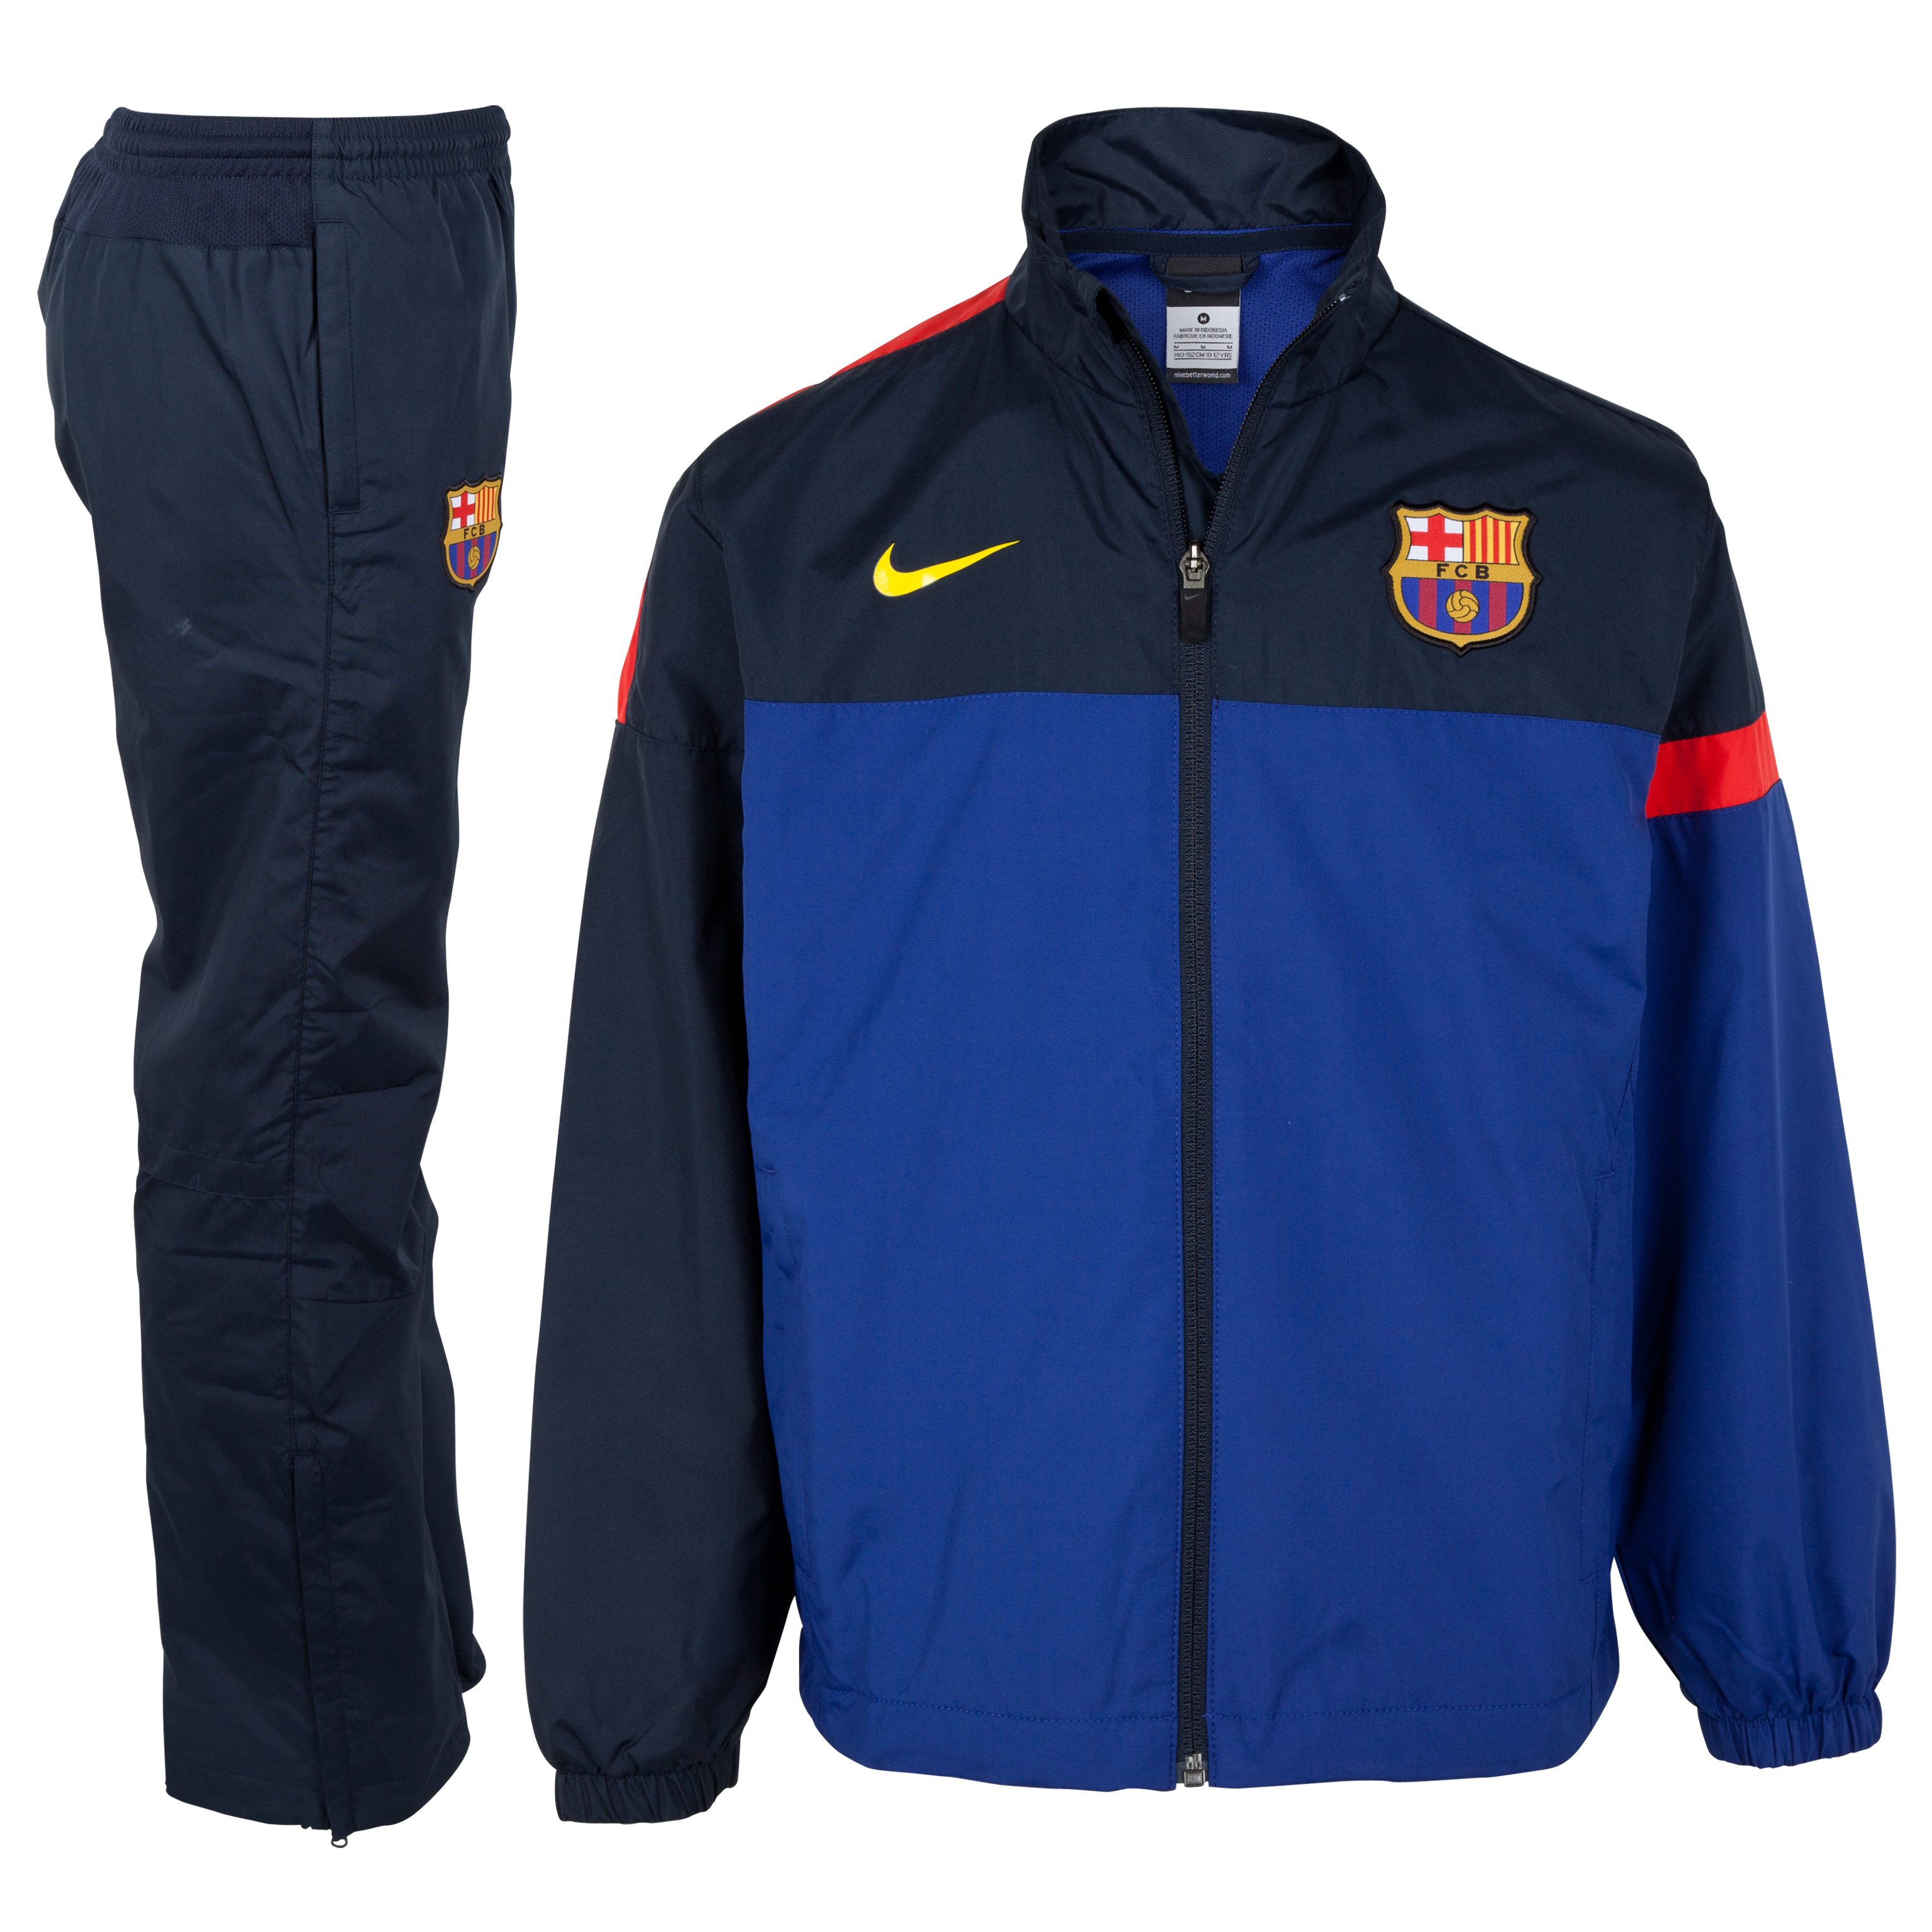 Barcelona Sideline Woven Warm-up Tracksuit - Deep Royal Blue/Tour Yellow - Youths